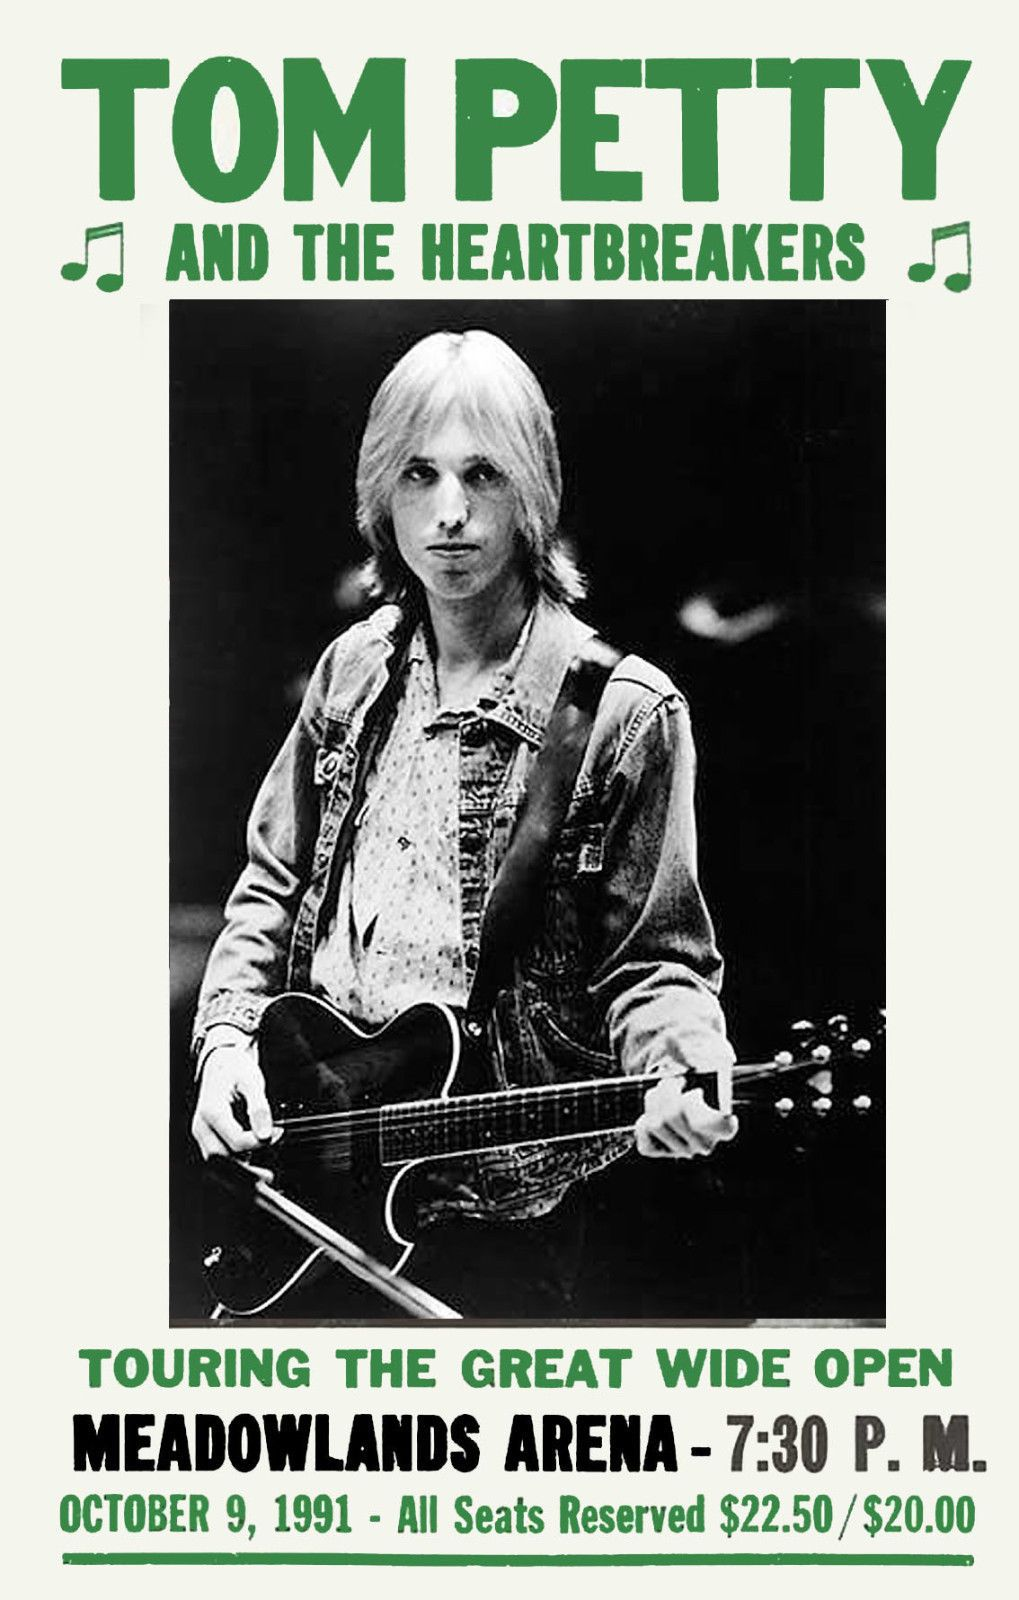 pin by greg simpson on from the wayback machine concert posters tom petty 1990s music. Black Bedroom Furniture Sets. Home Design Ideas